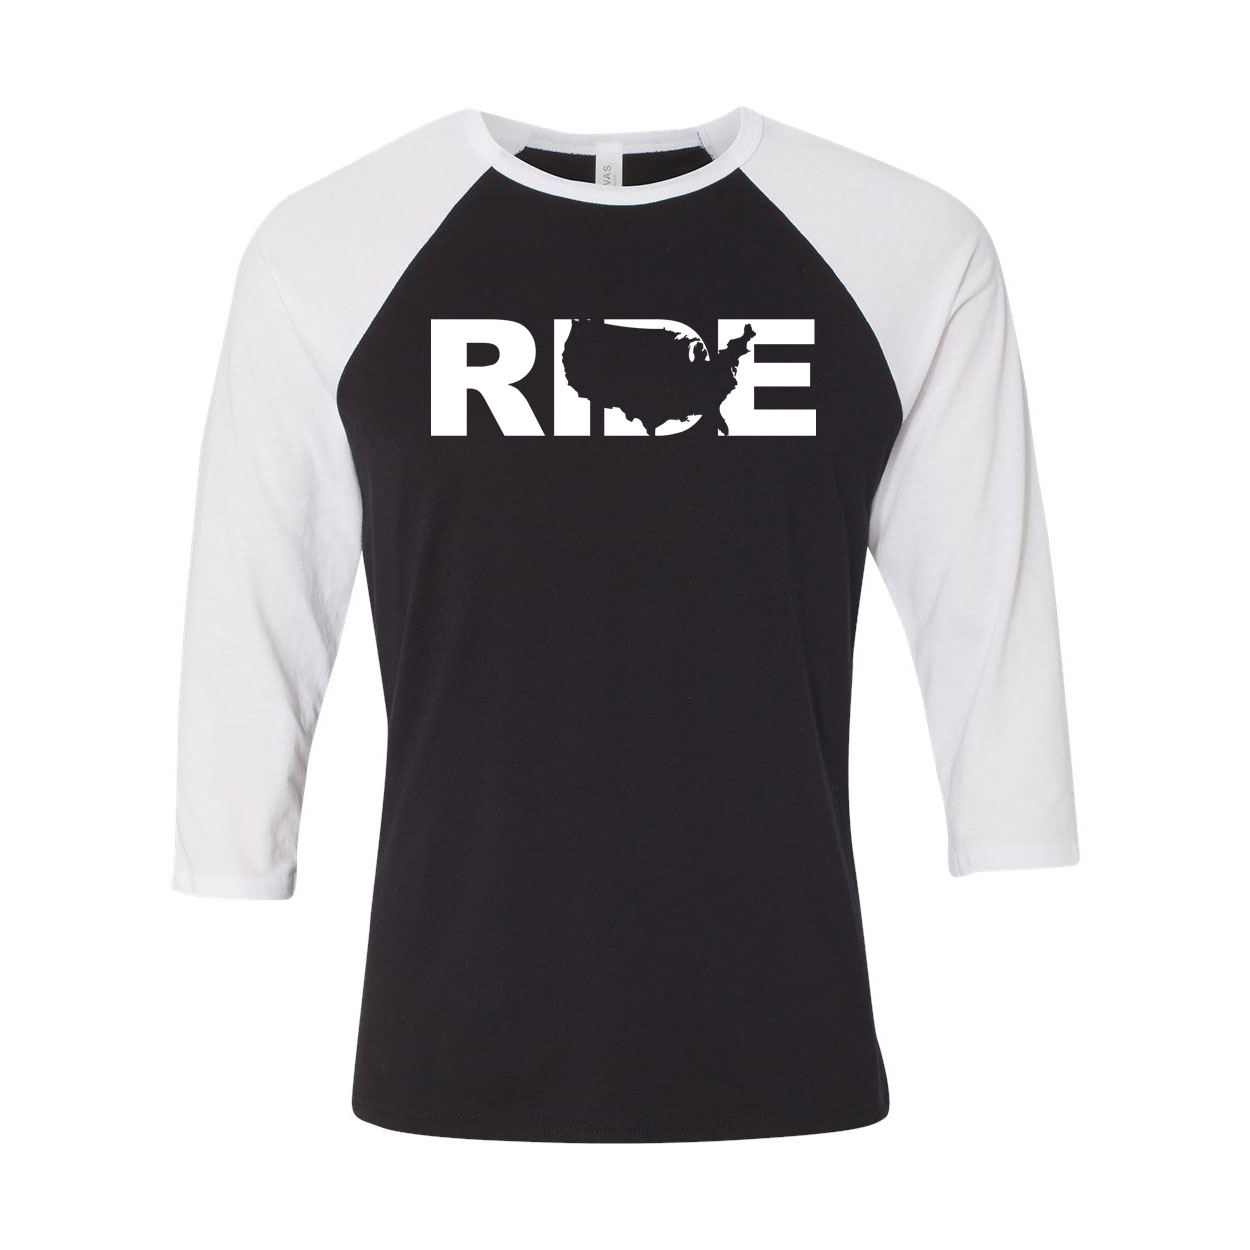 Ride United States Classic Raglan Shirt Black/White (White Logo)